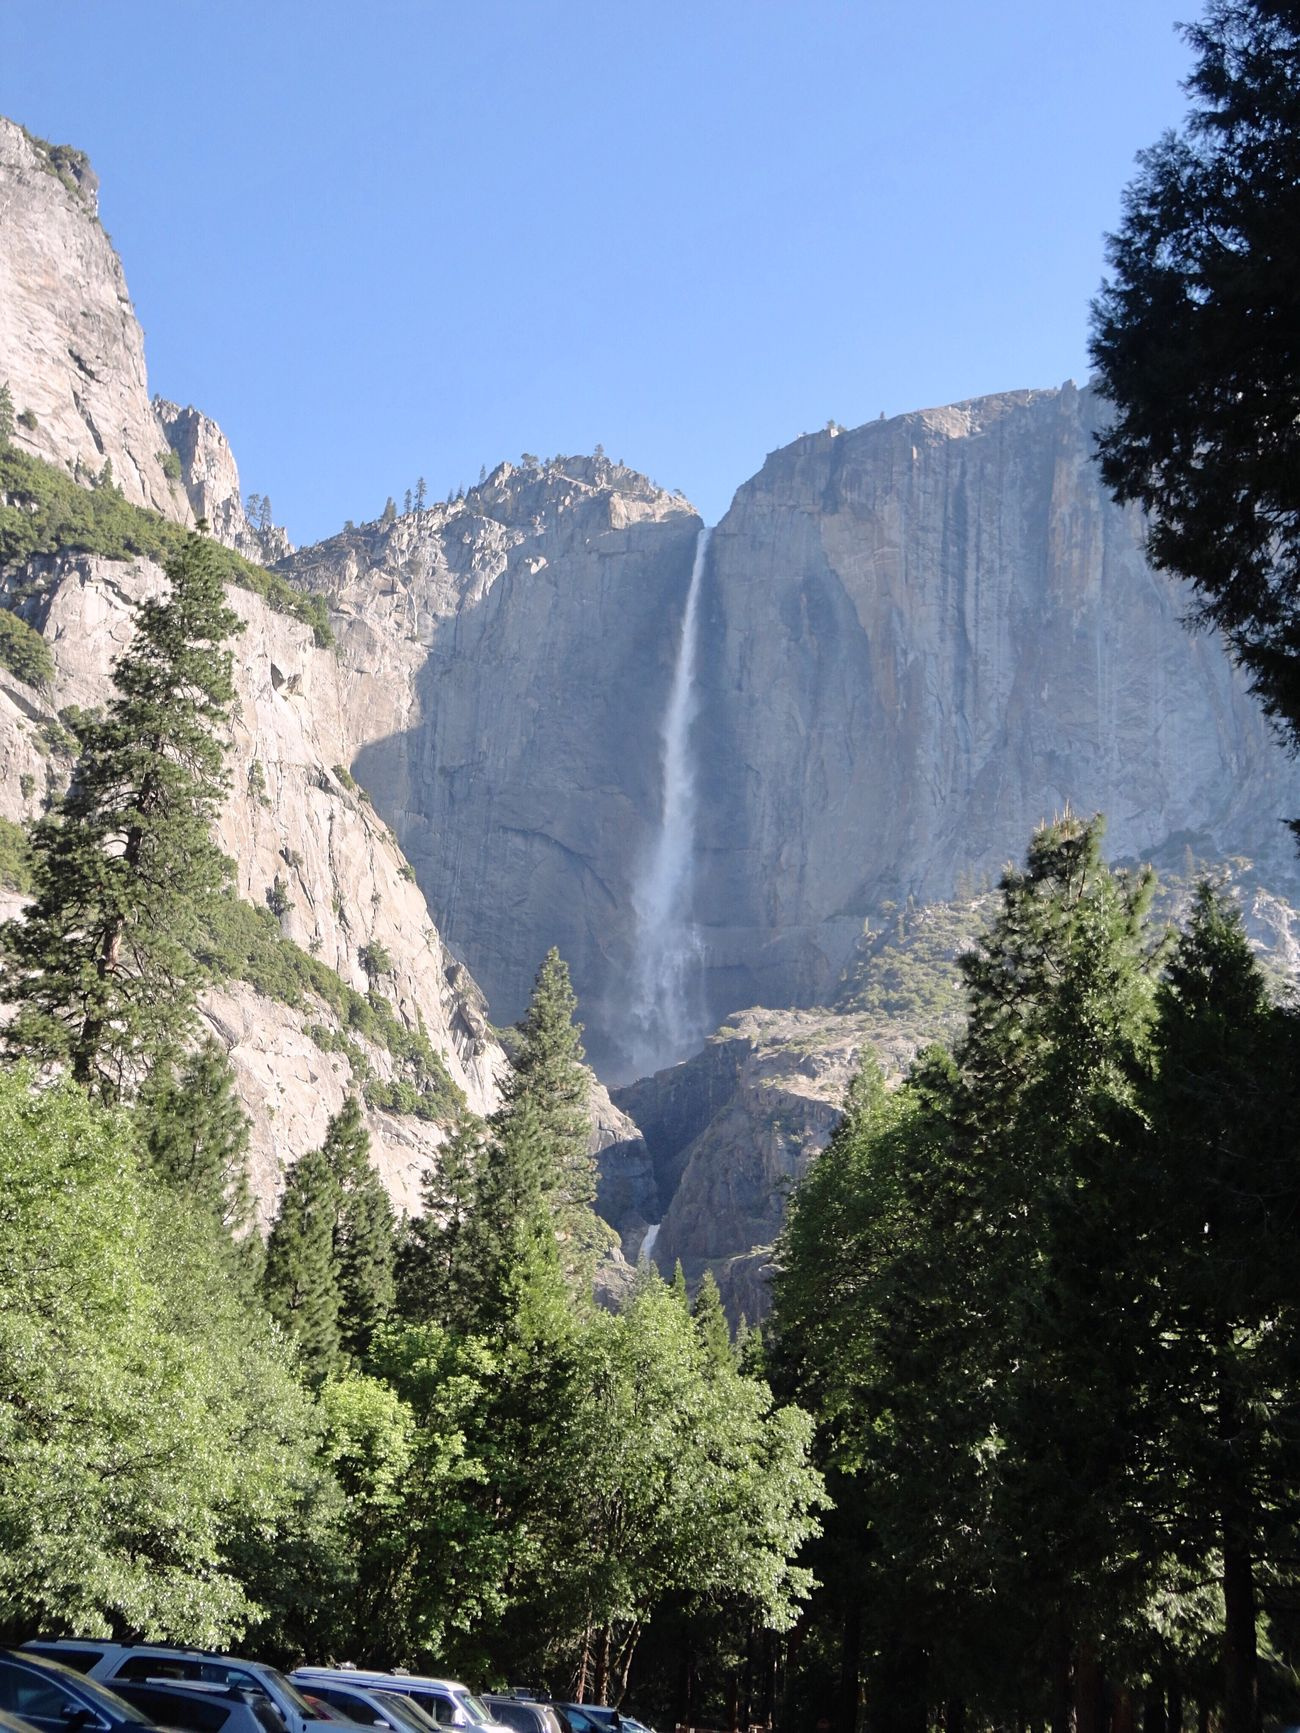 Yosemite Falls 739m⛰ Yosemite National Park California United States America USAtrip UNESCO World Heritage Site Waterfall USA Photos Yosemite WOW Beauty In Nature Outdoors EyeEm Nature Lover Clear Sky Enjoying The View Travel Photography Waterfall_collection Amazing Nature Great View ヨセミテ国立公園 カリフォルニア アメリカ 世界遺産 滝